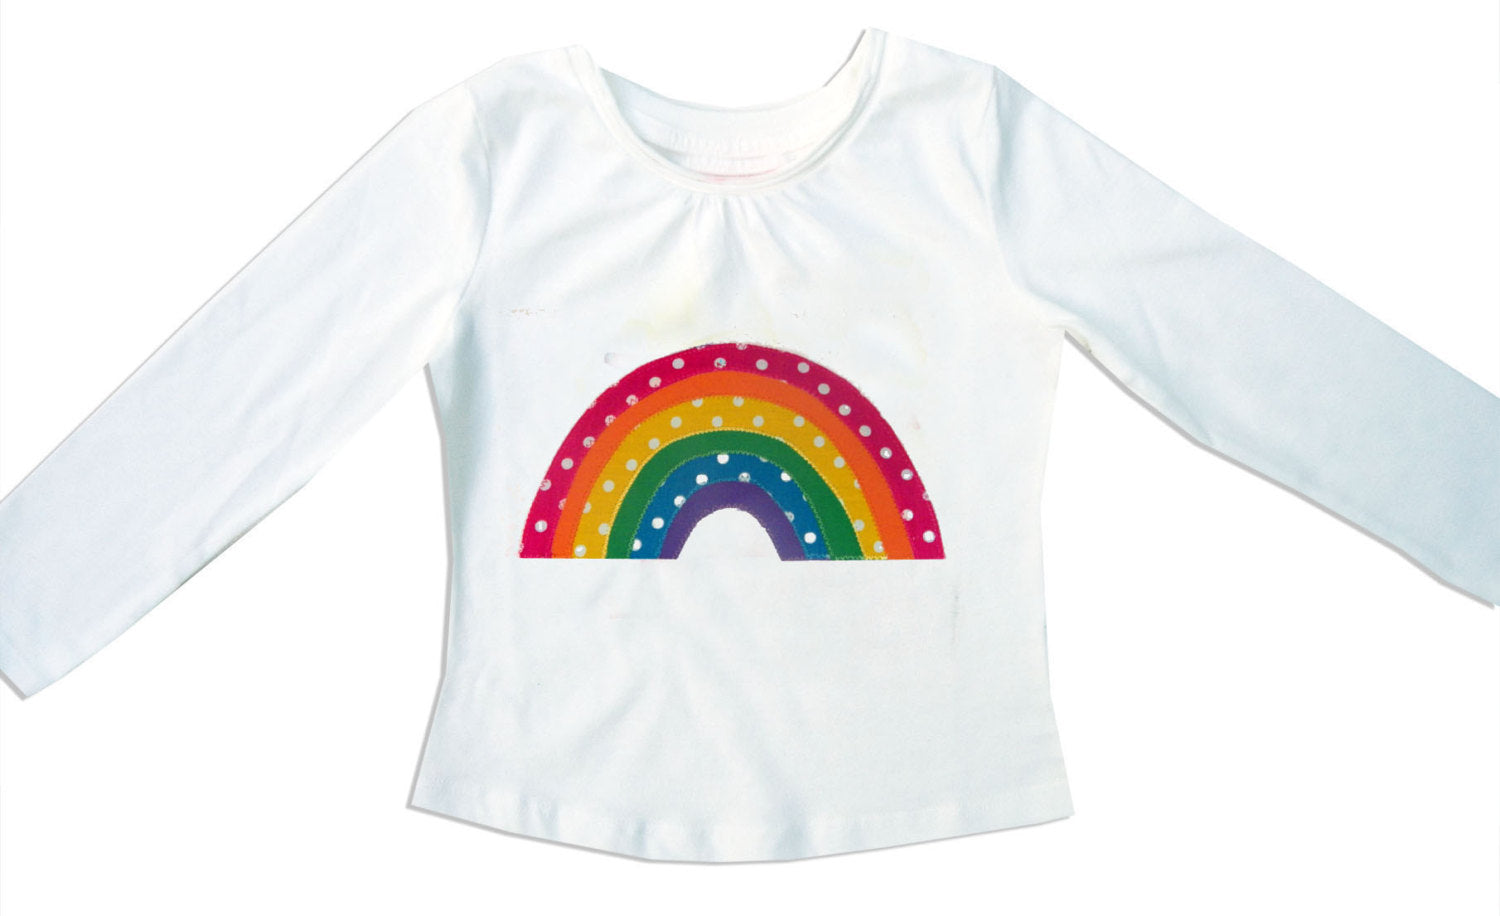 Girl's Rainbow Skirt and T-shirt, Rainbow Tee Shirt, Girls Clothing, Rainbow Clothes, Toddler Clothing, Rainbow Gift for Girls